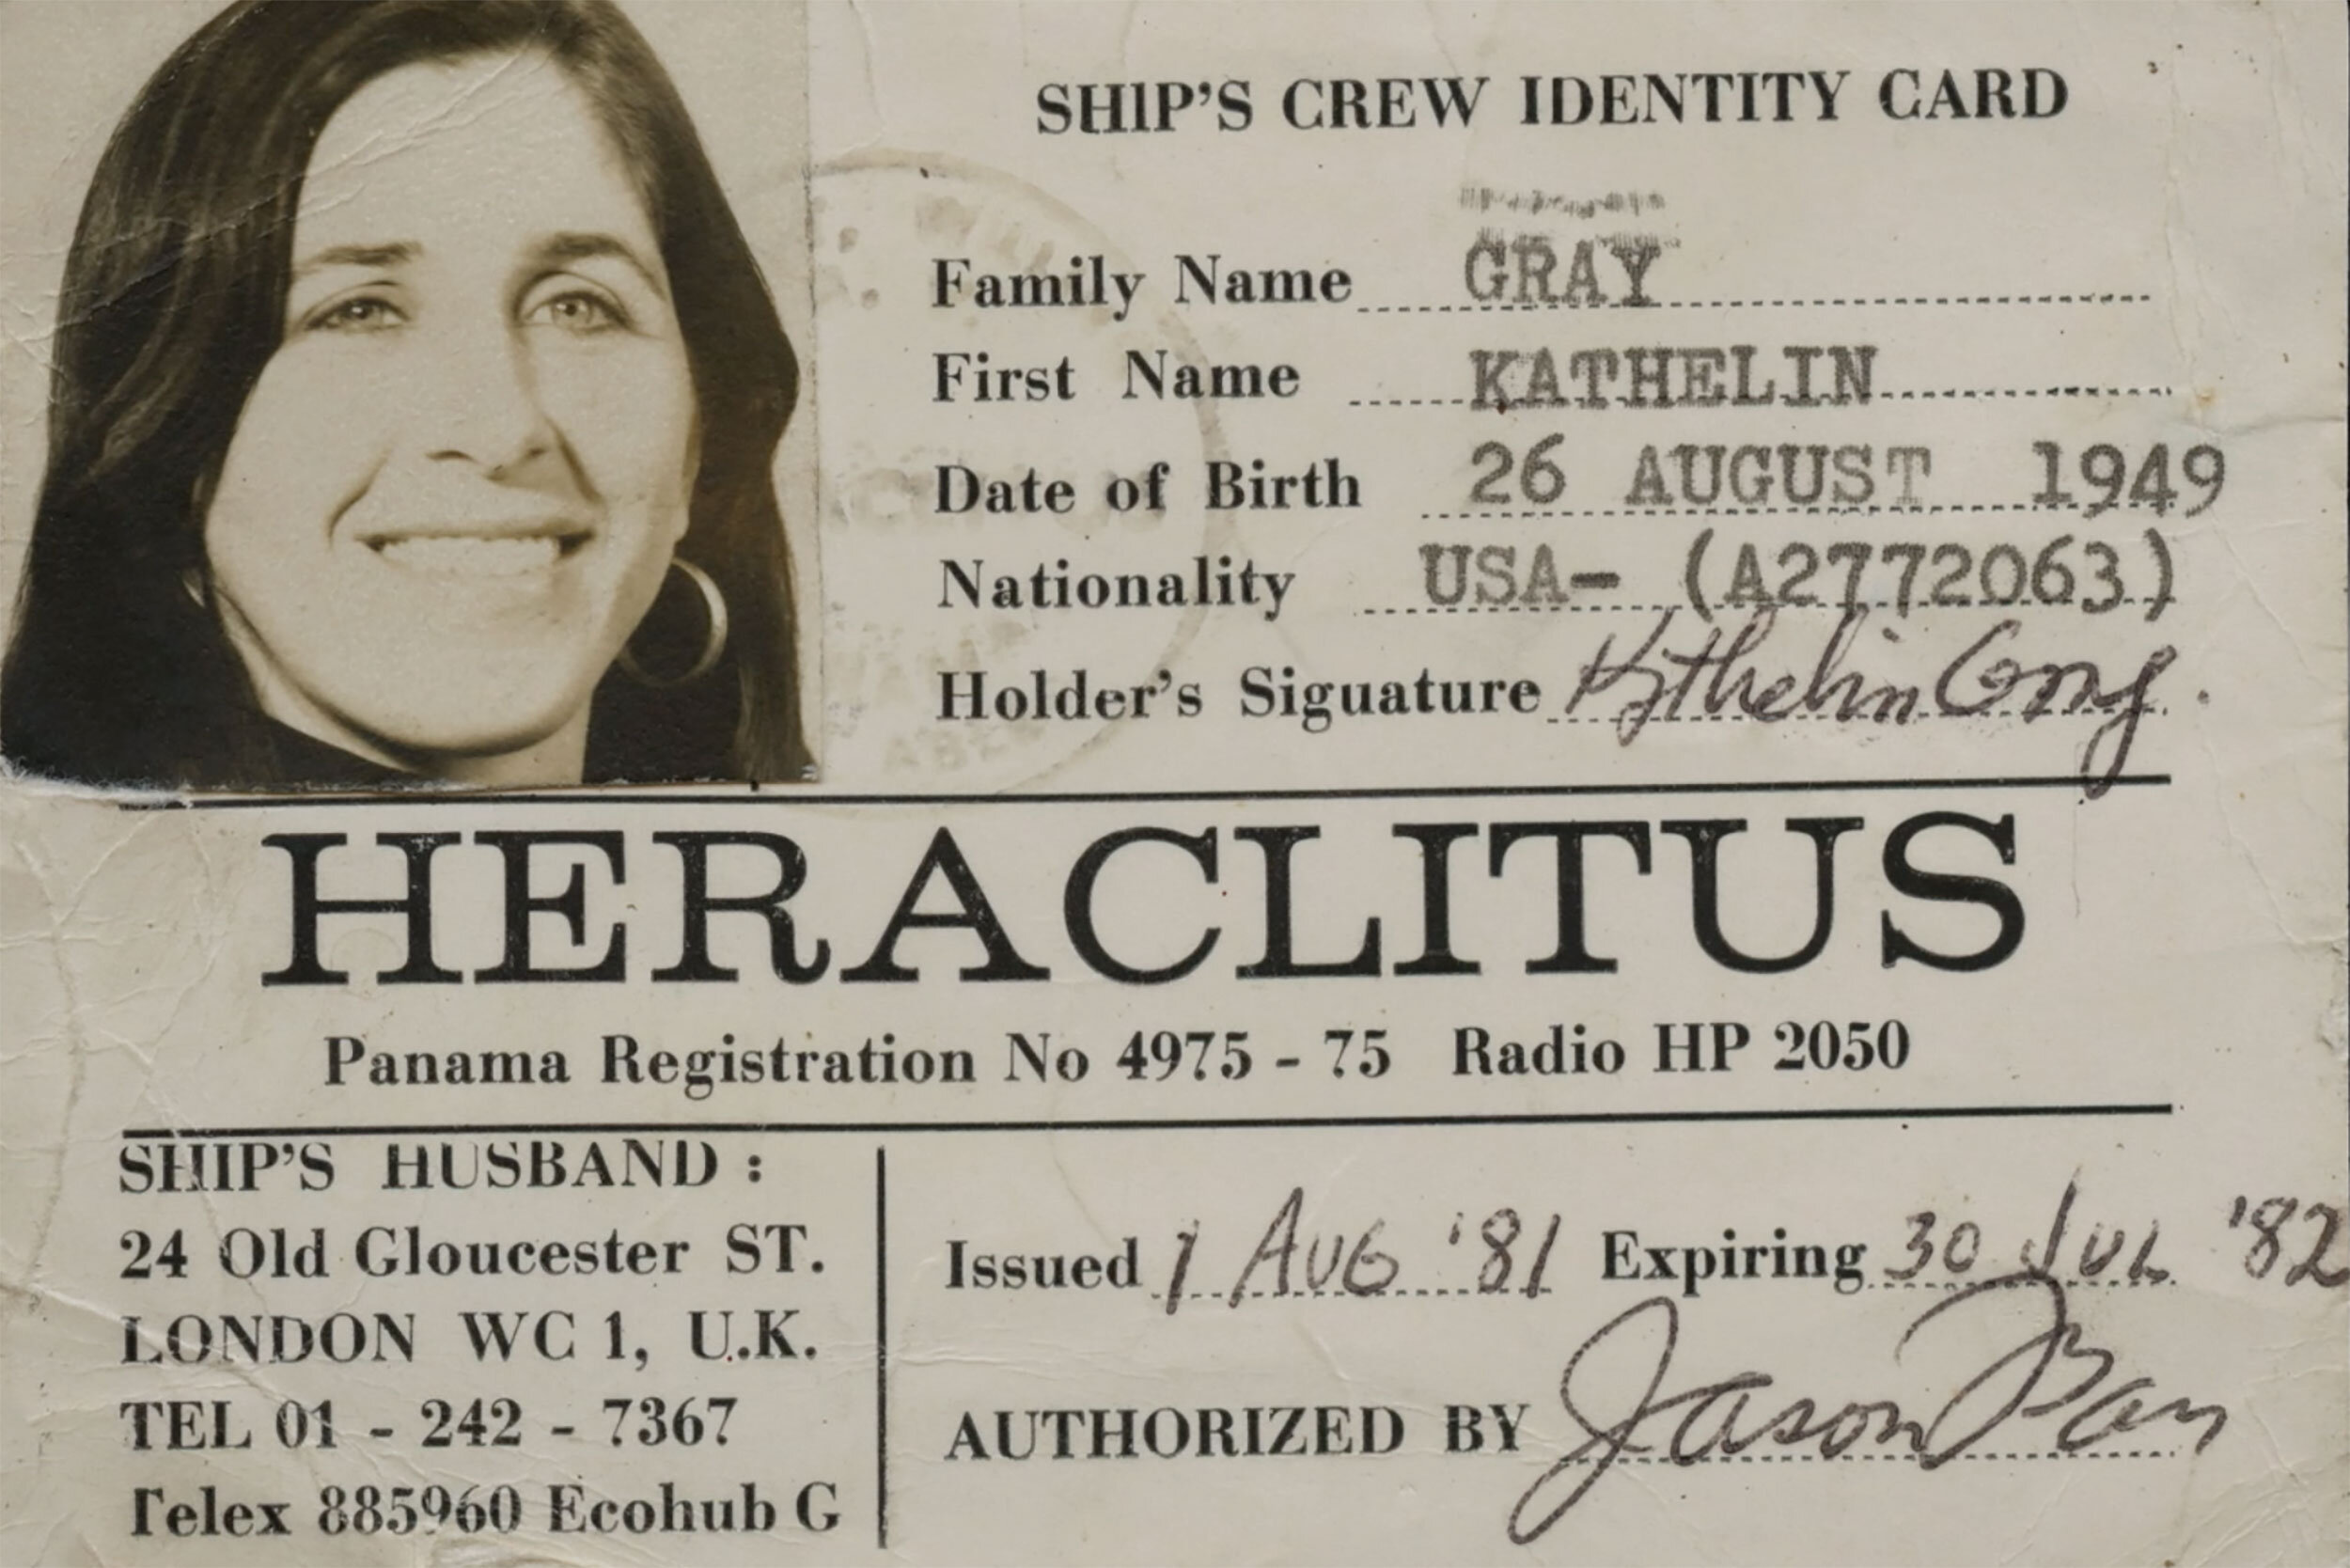 Crew ID card for the Heraclitus